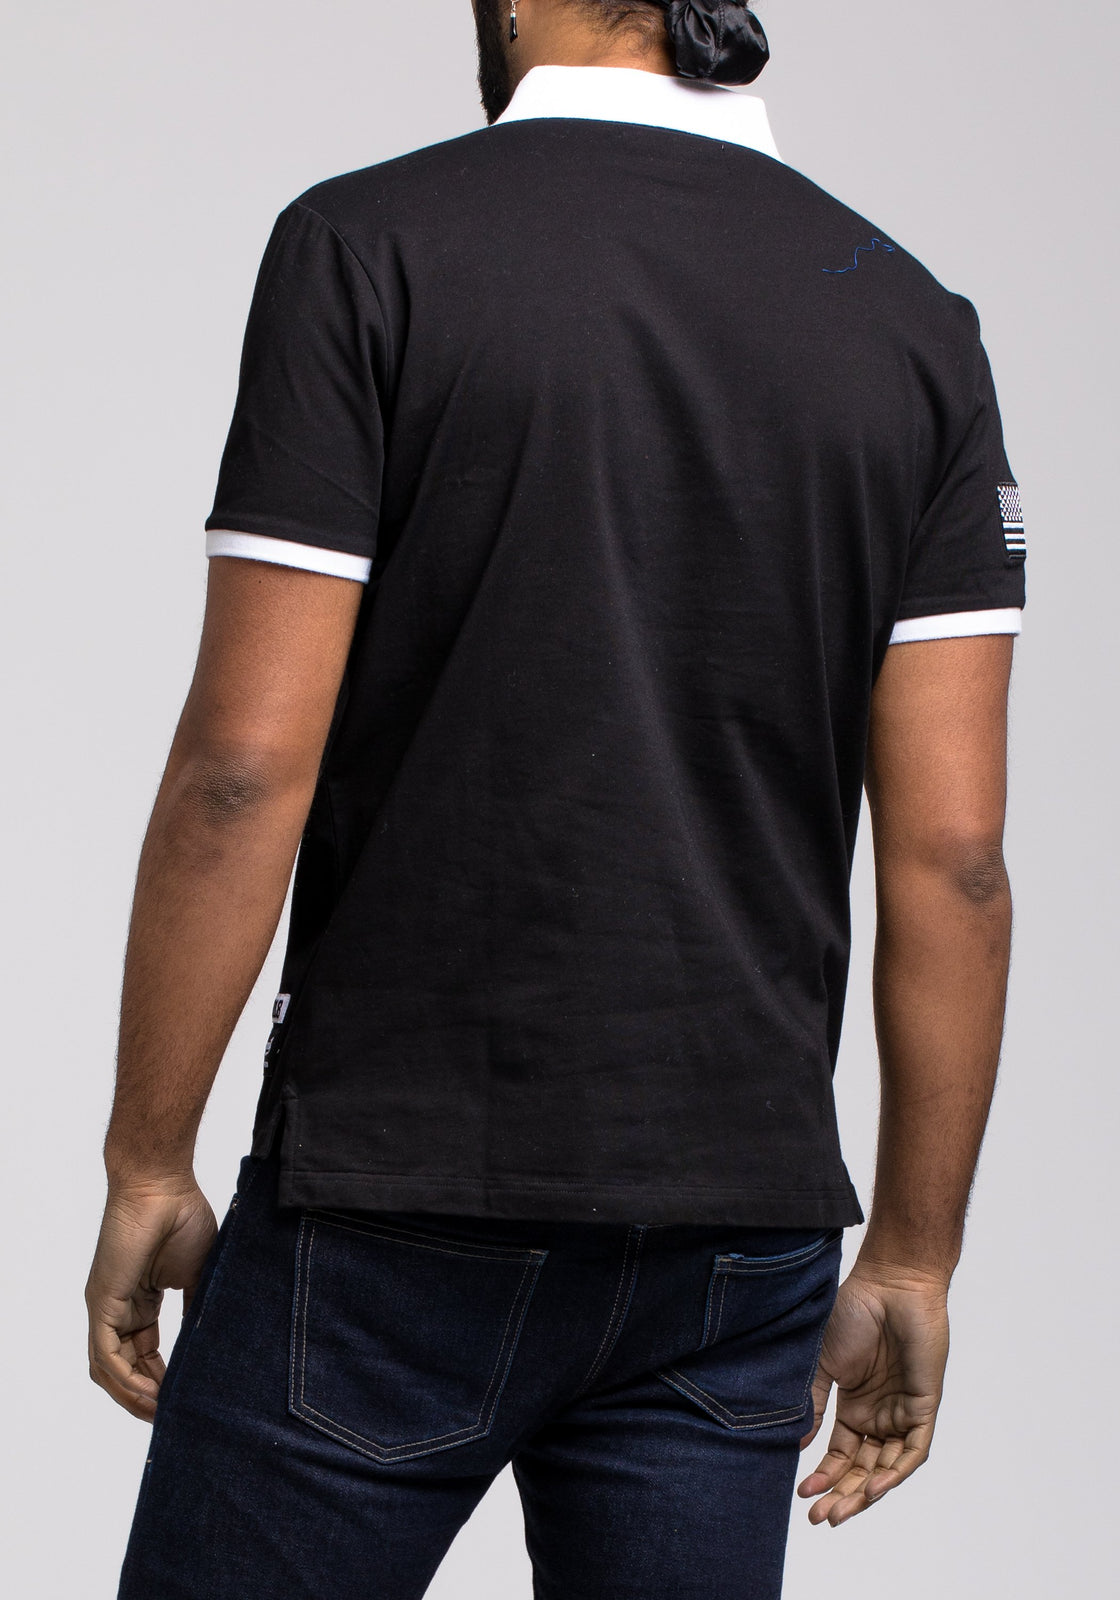 BP Polo Shirt - Color: Black